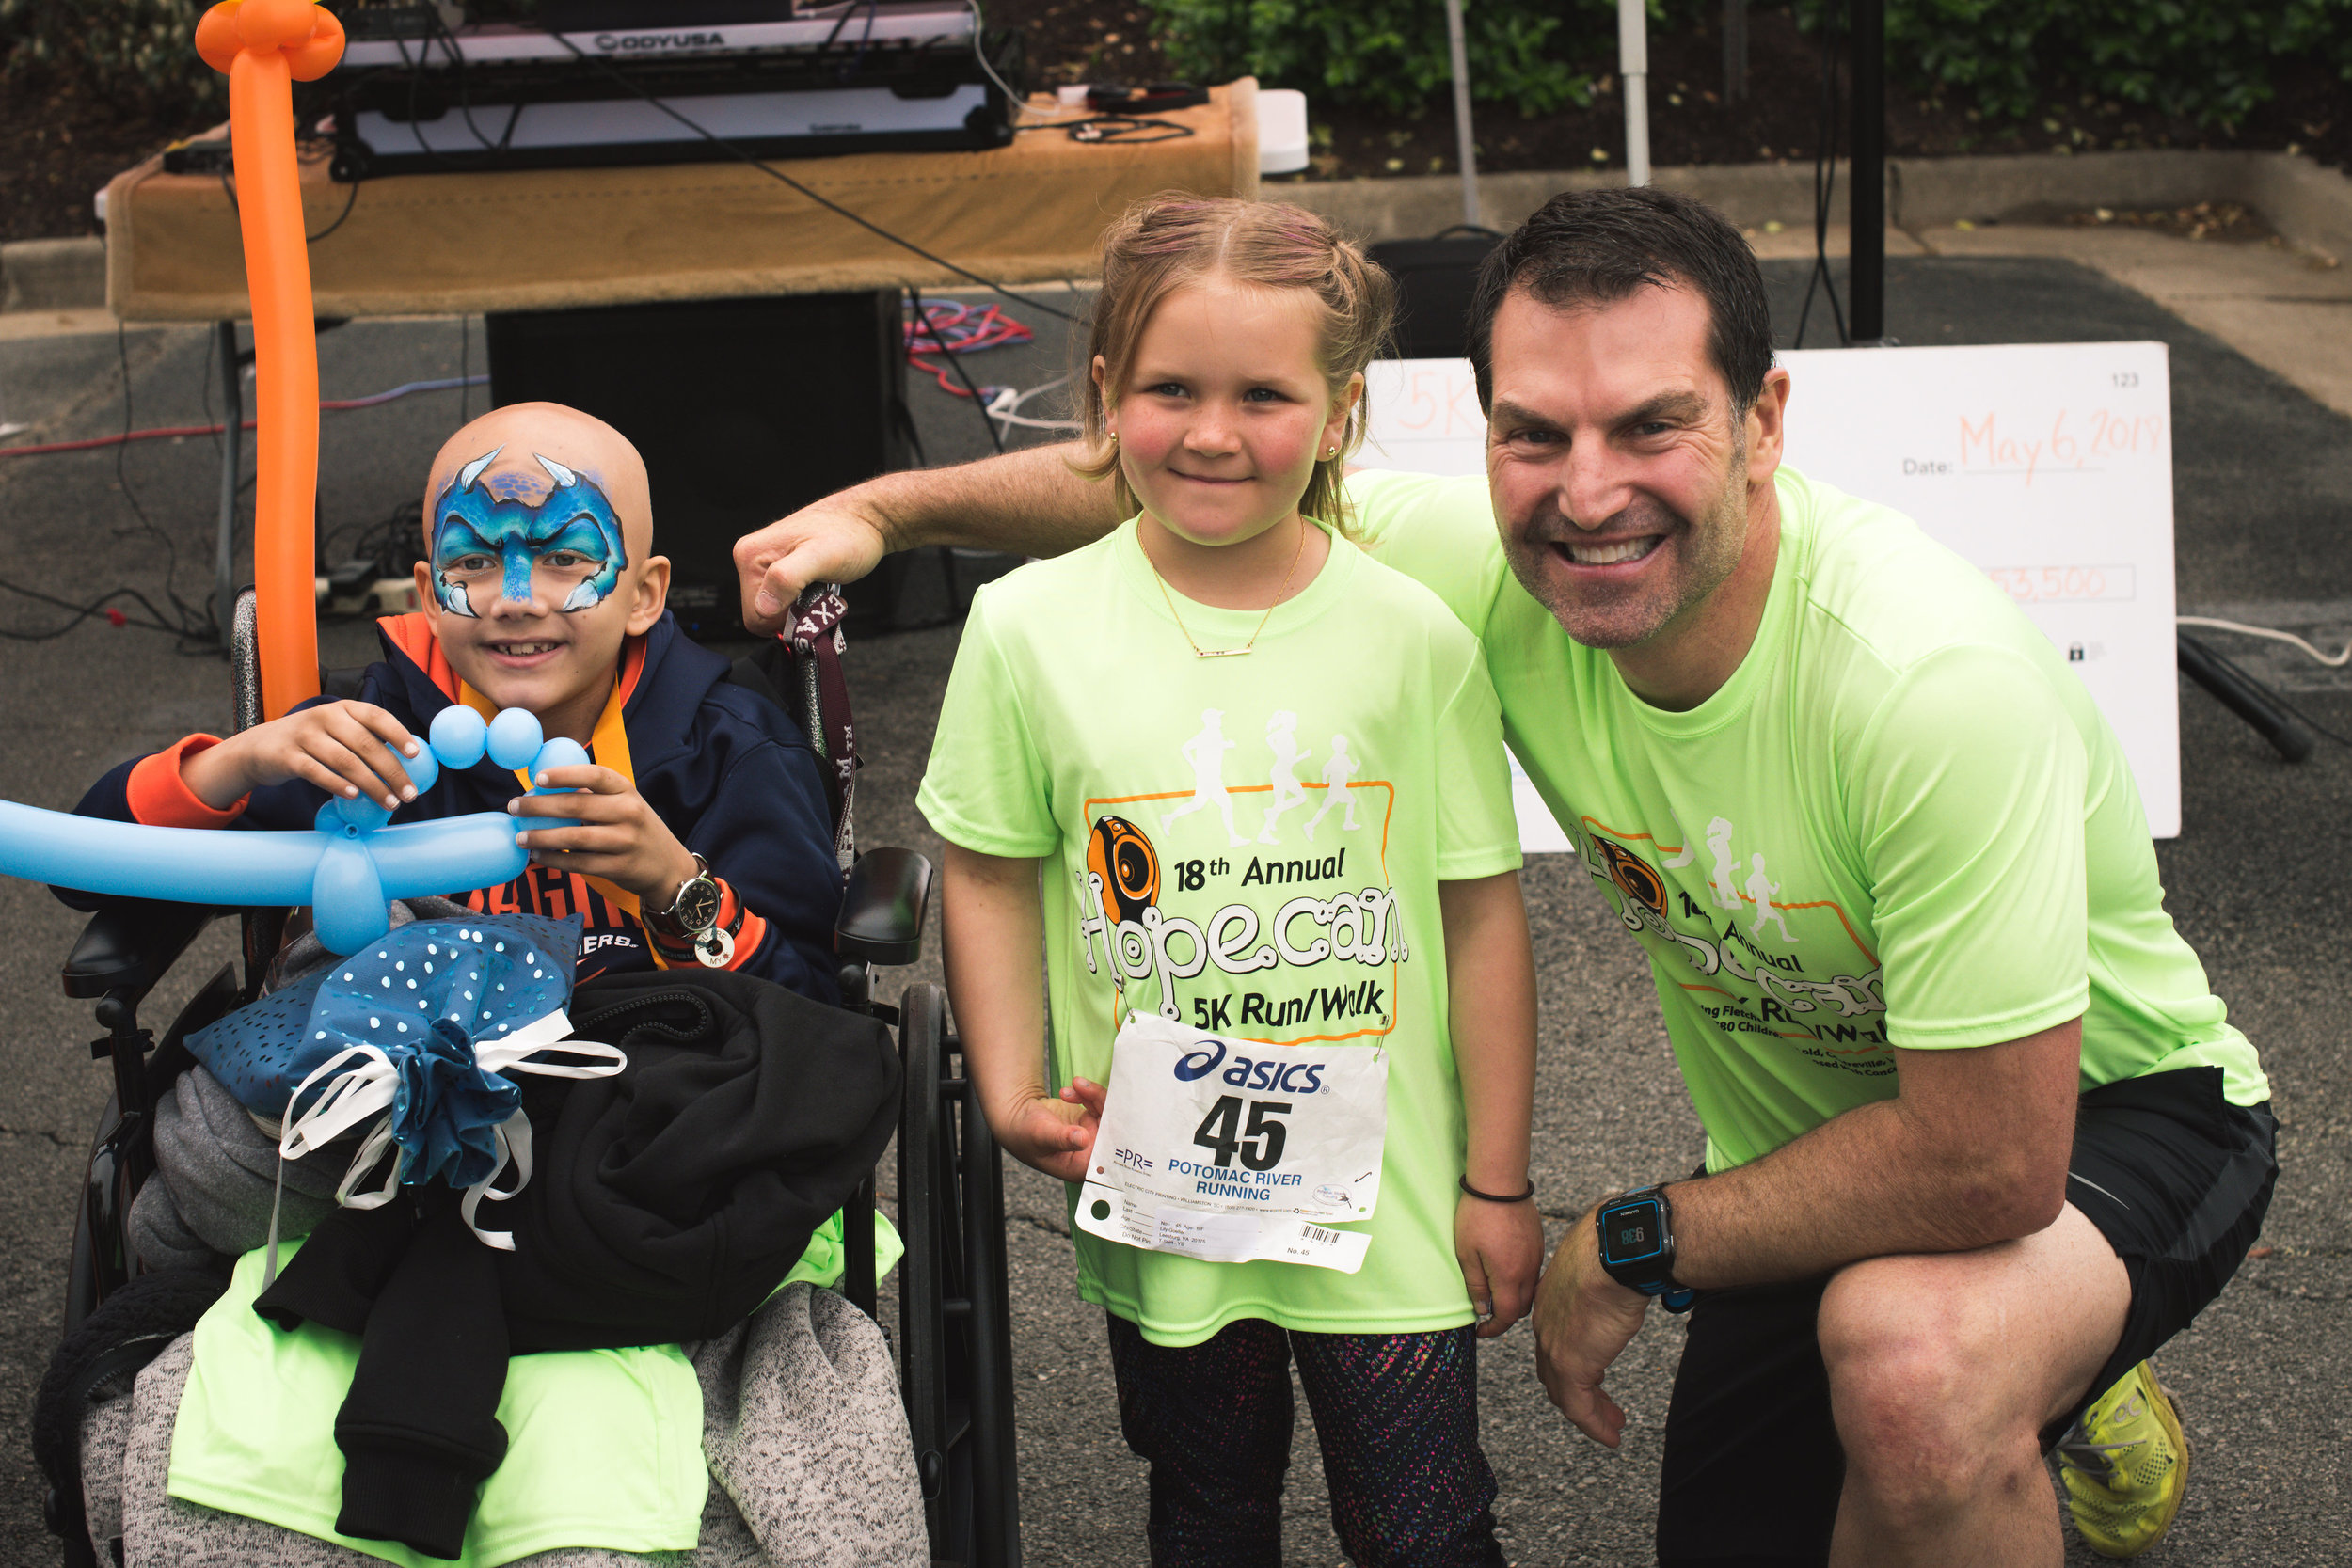 Len Forkas with our Hopecam 5K Honored Child 'Fletcher' and Hopecam Child 'Lily'